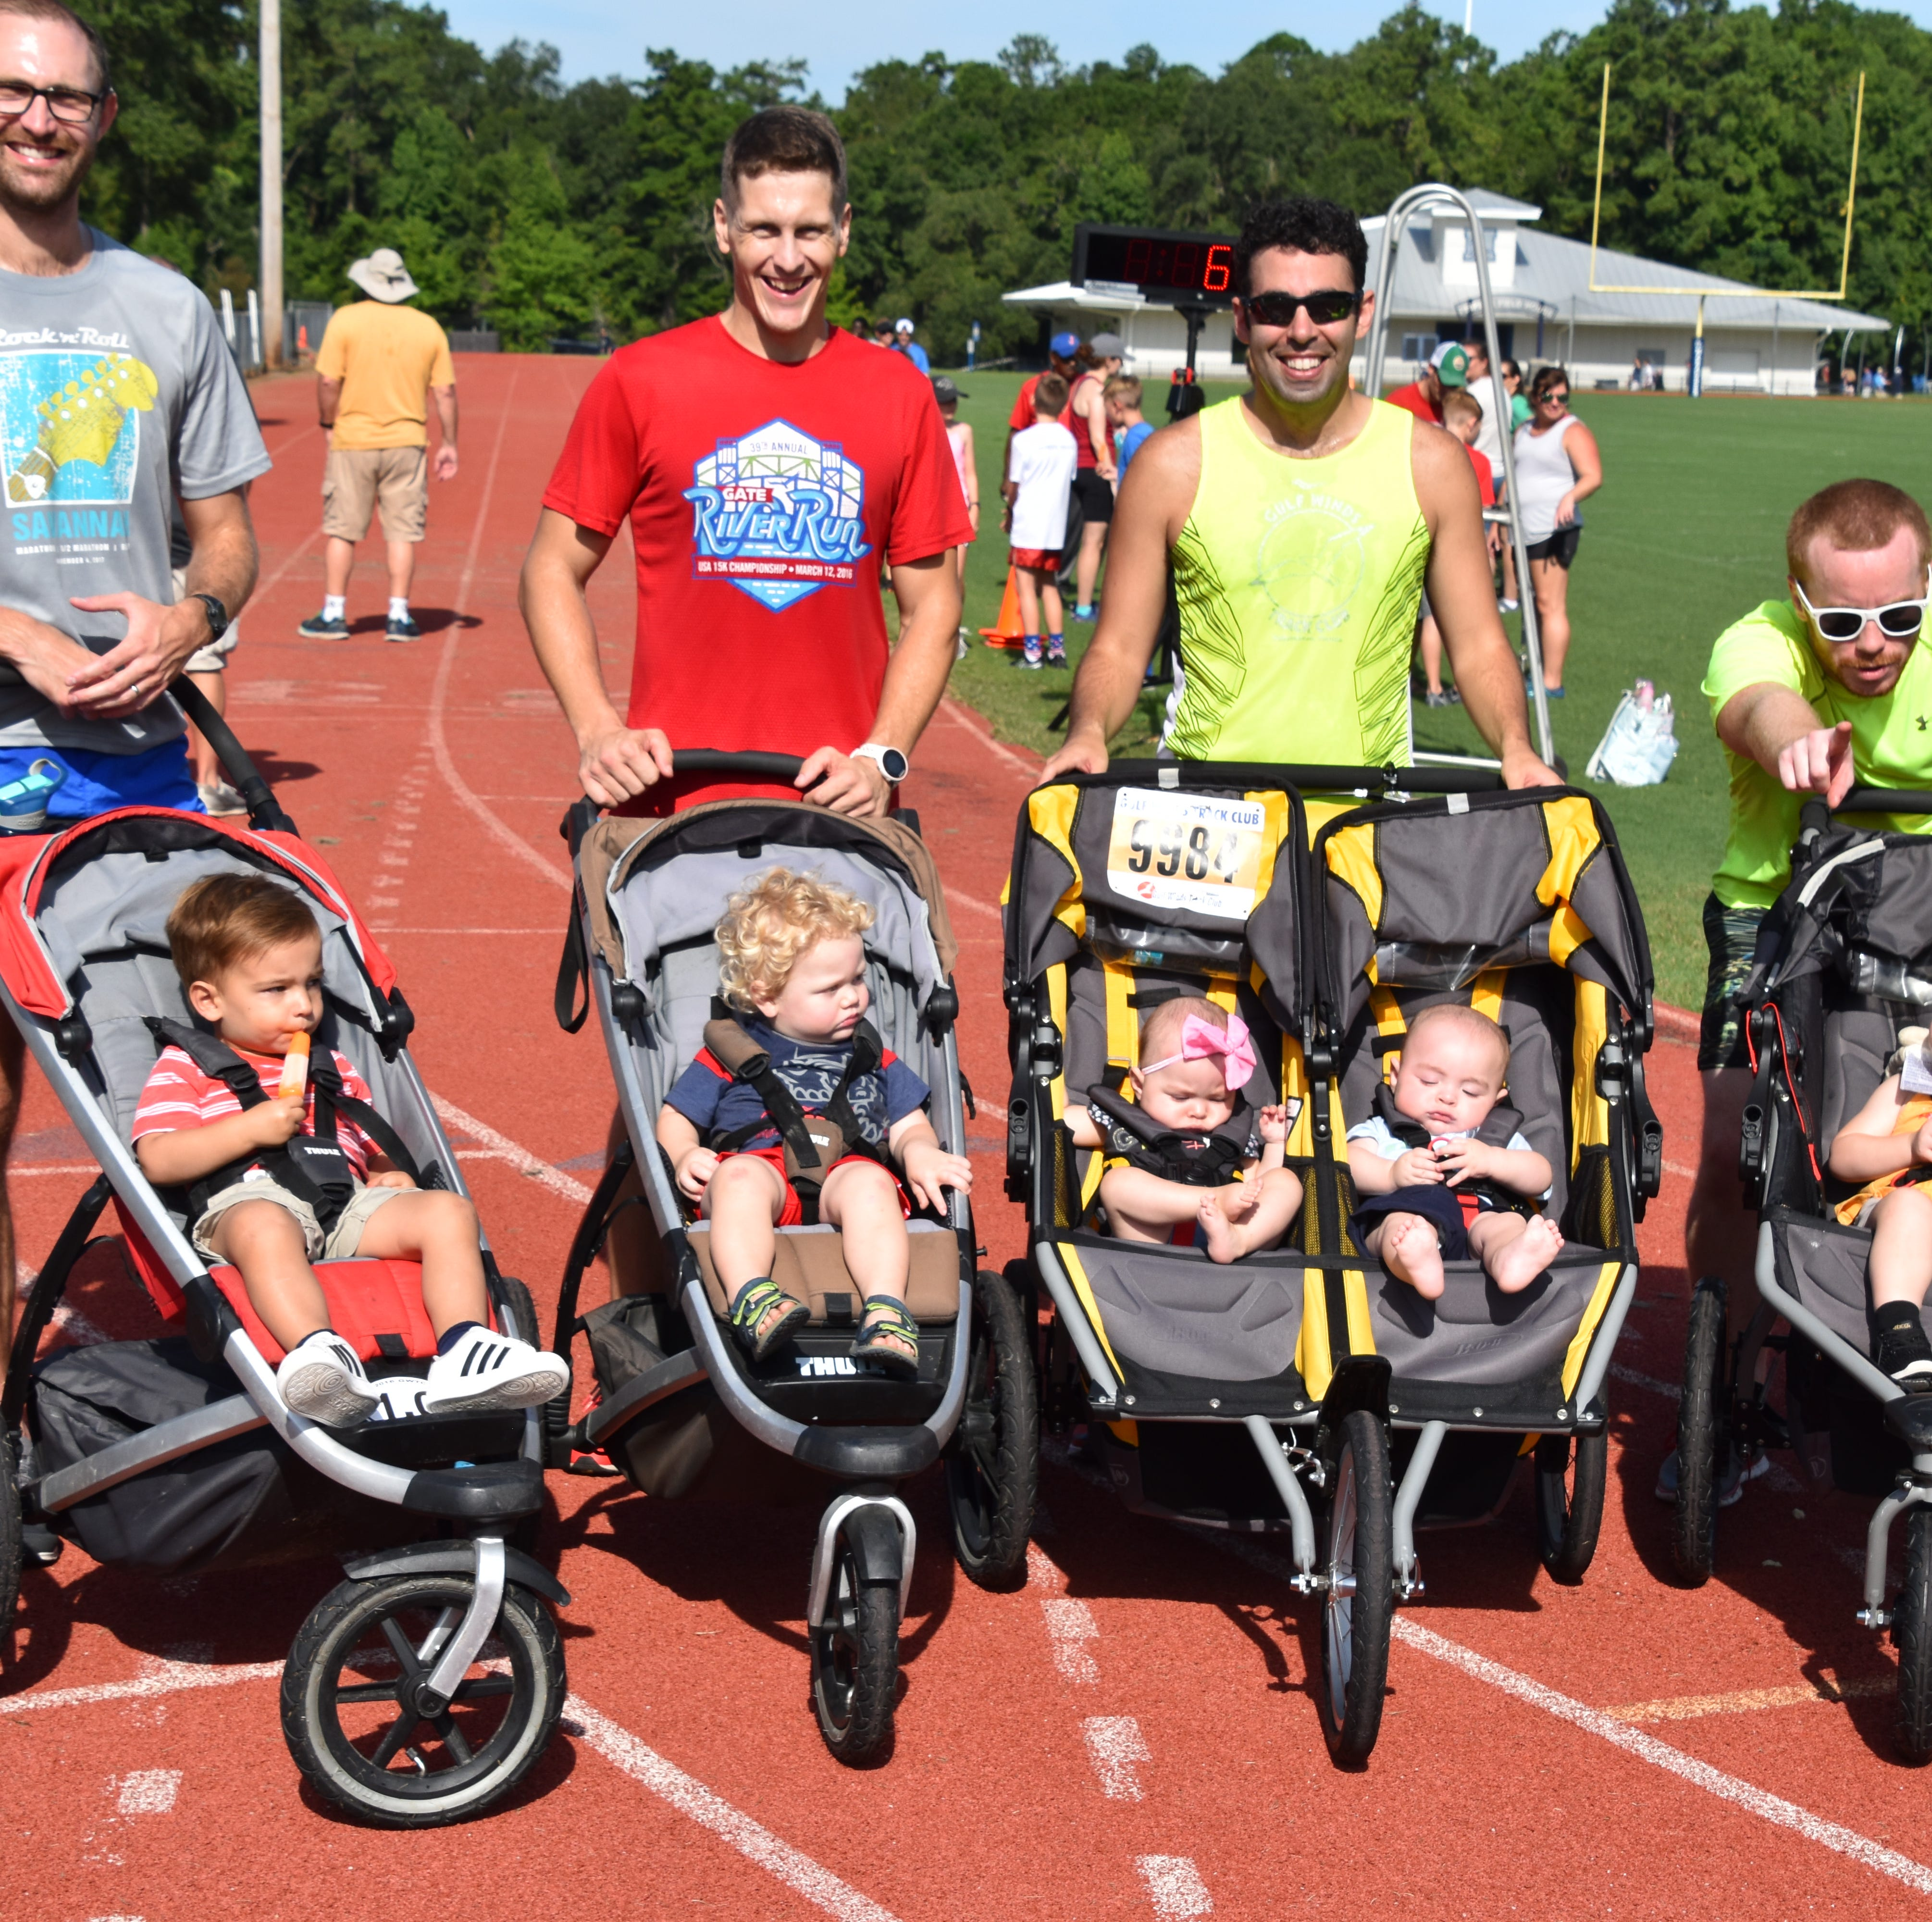 GWTC's Breakfast on the Track is fun for participants of all ages